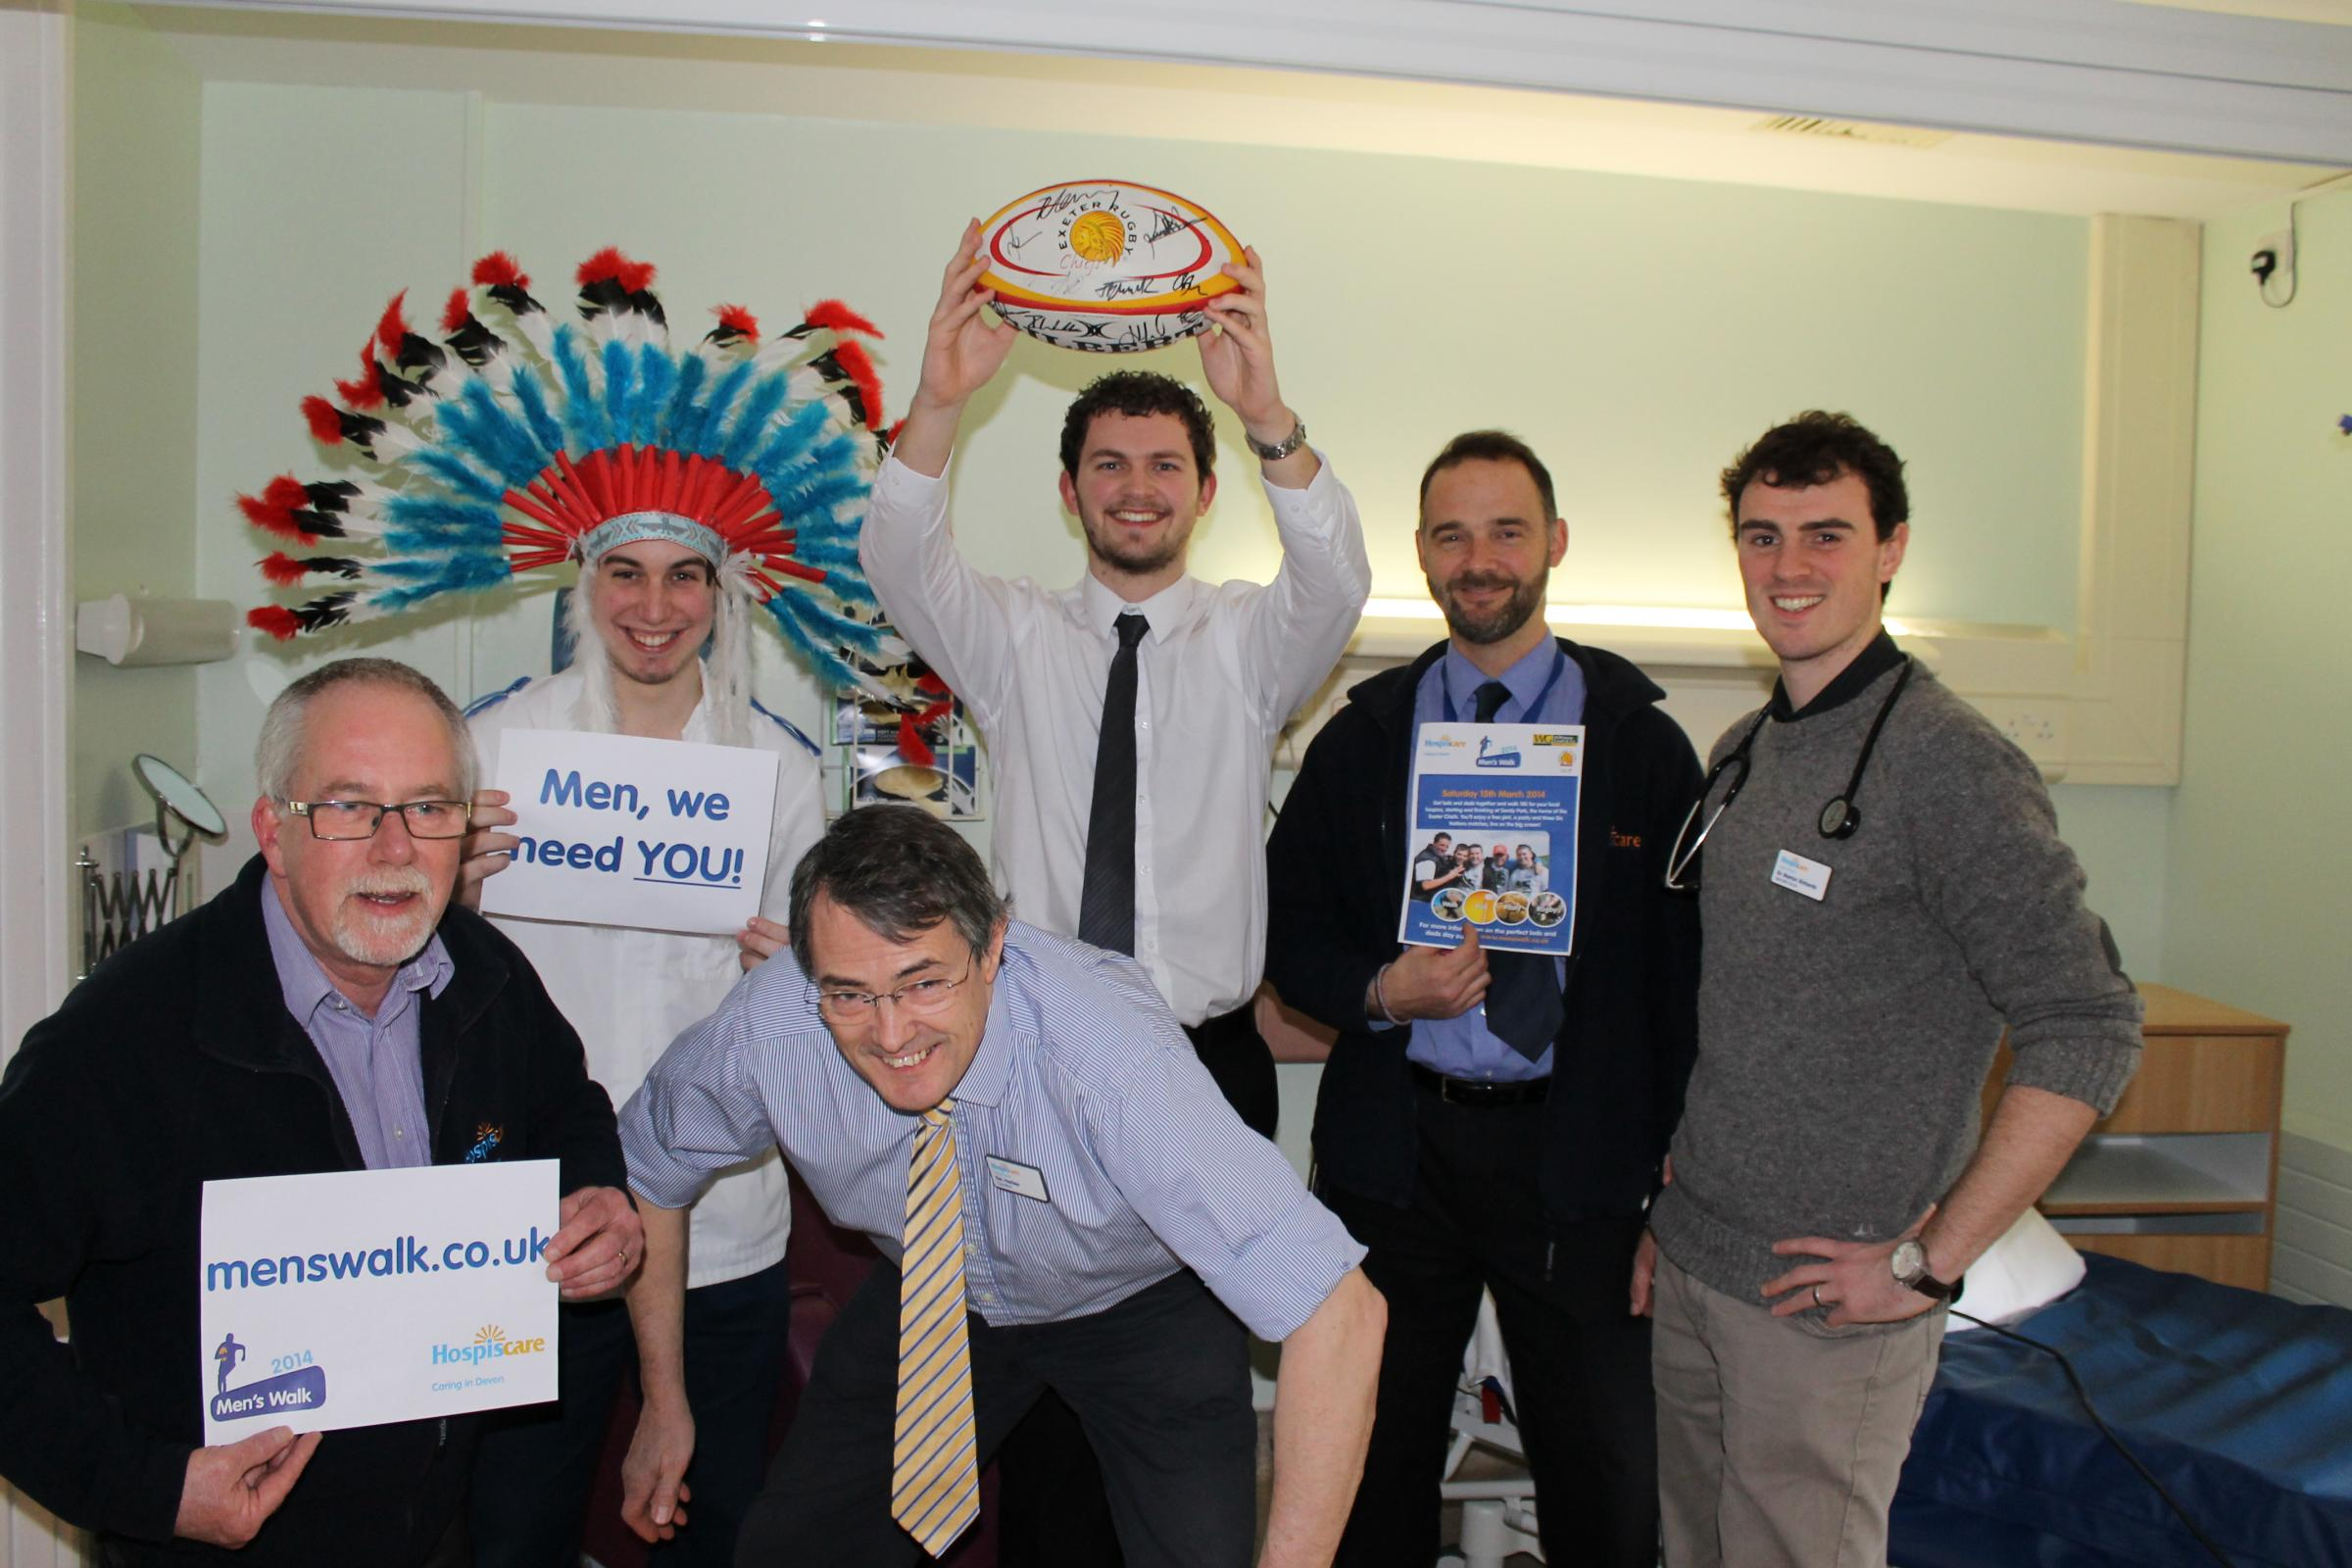 Medical men join walk appeal